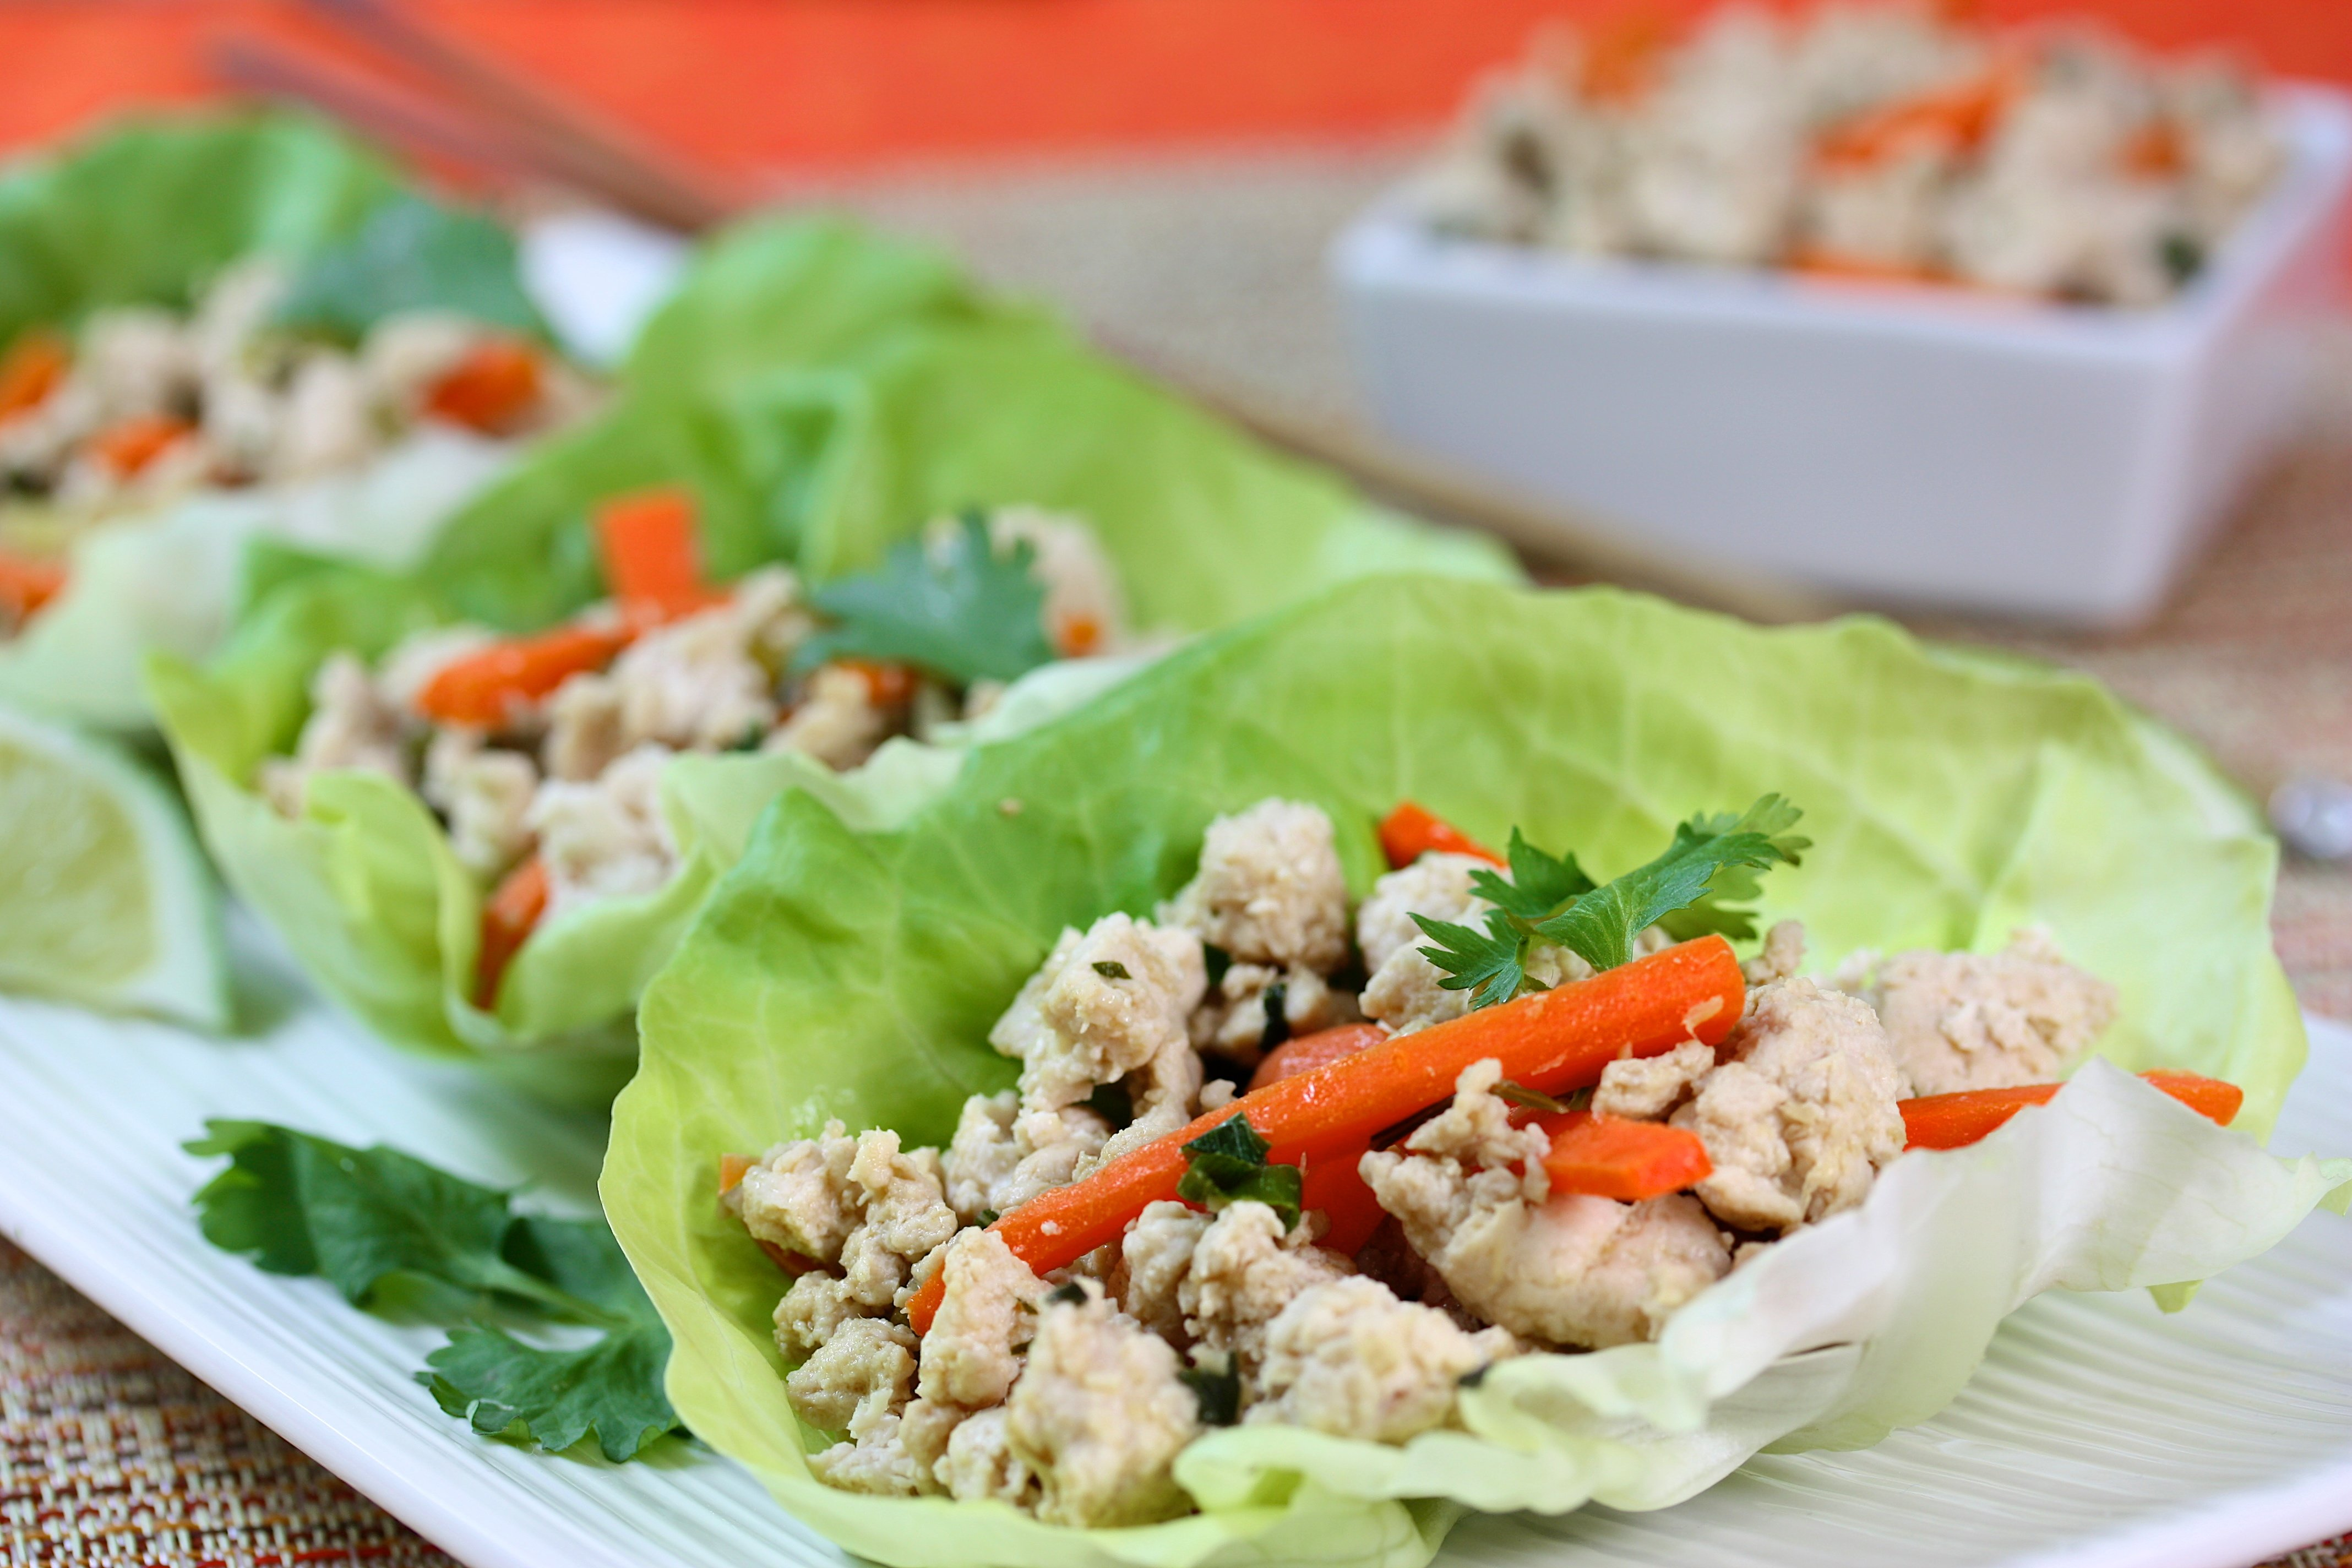 BBQ Pulled Jack Fruit Lettuce Wraps